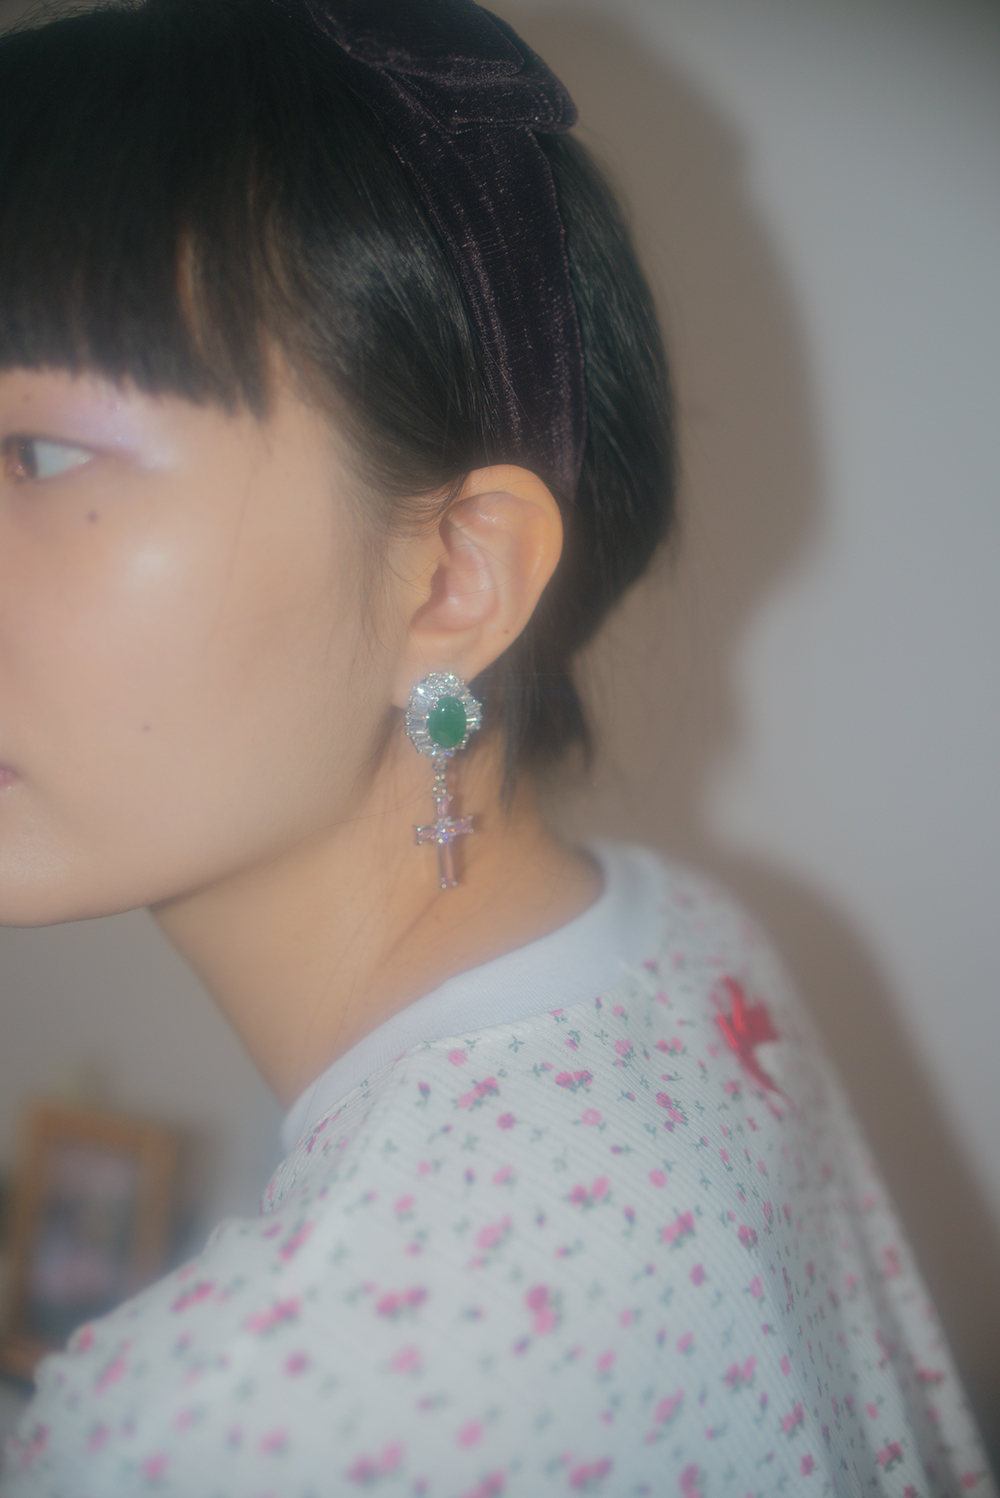 jade crucifix earring & pierce